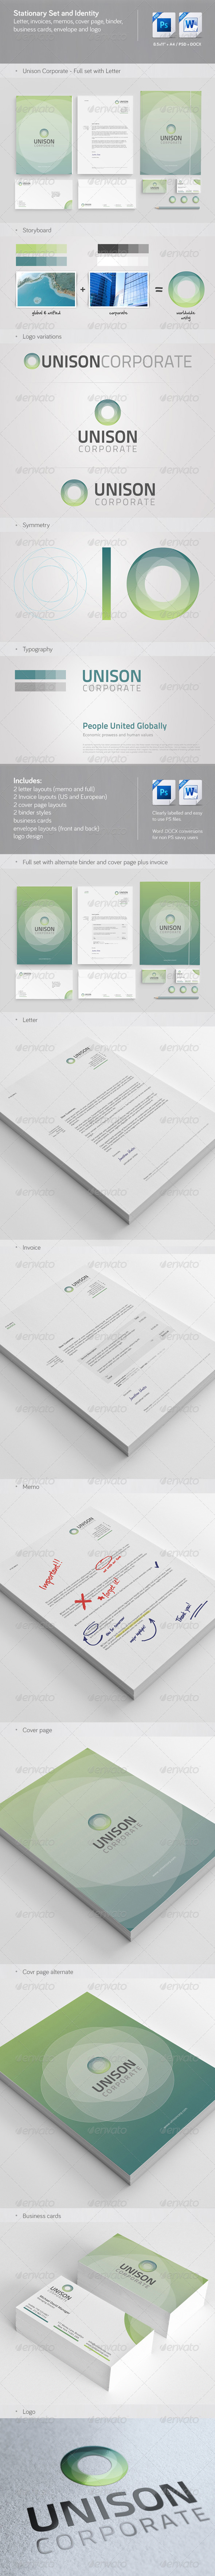 GraphicRiver Unison Corporate Stationary Invoice and Identity 4343244